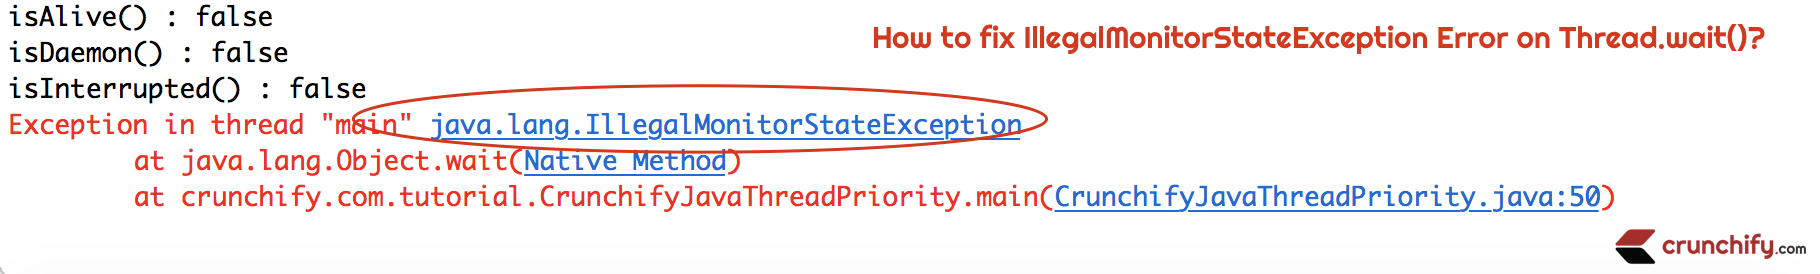 how to repair application exception